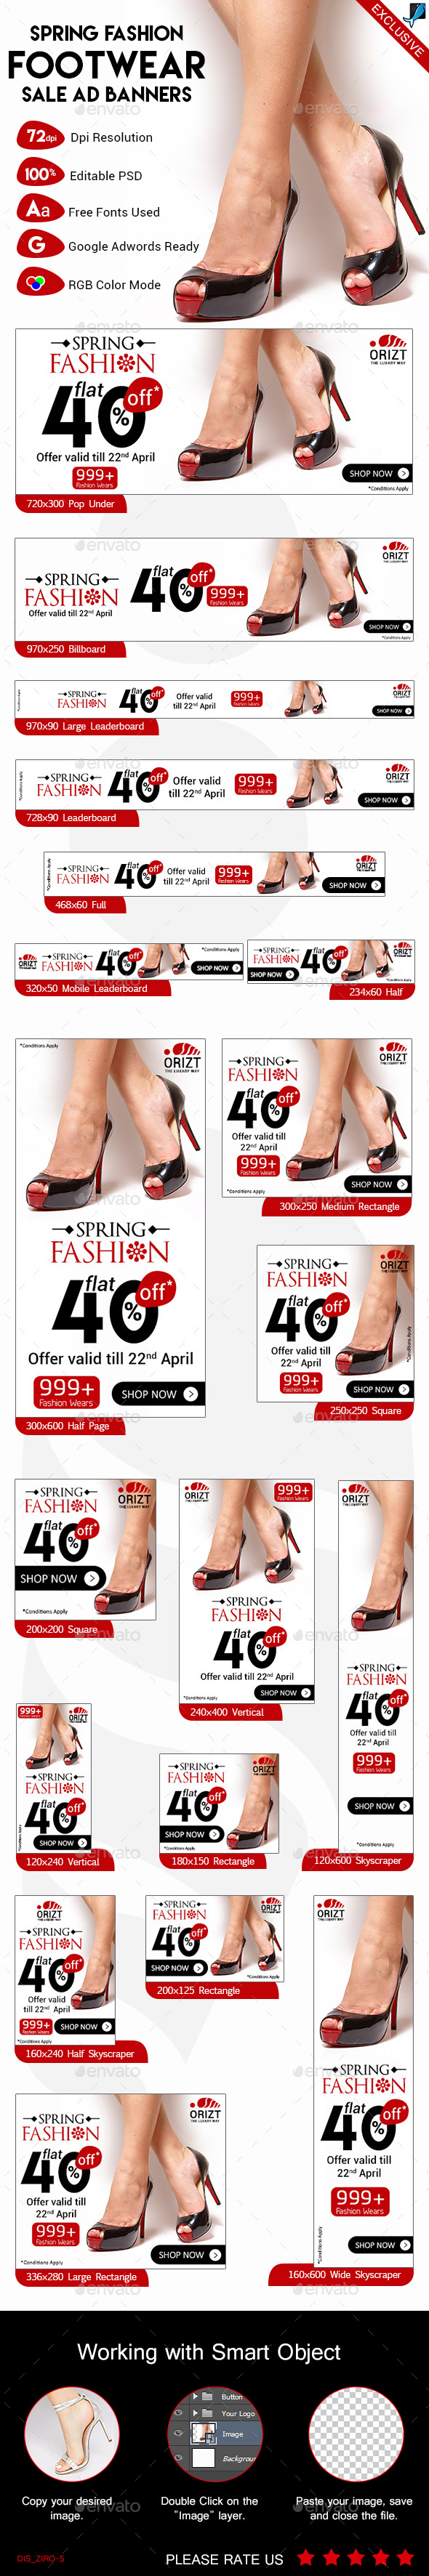 Spring Fashion Footwear Sale  Ad Banners - Banners & Ads Web Elements